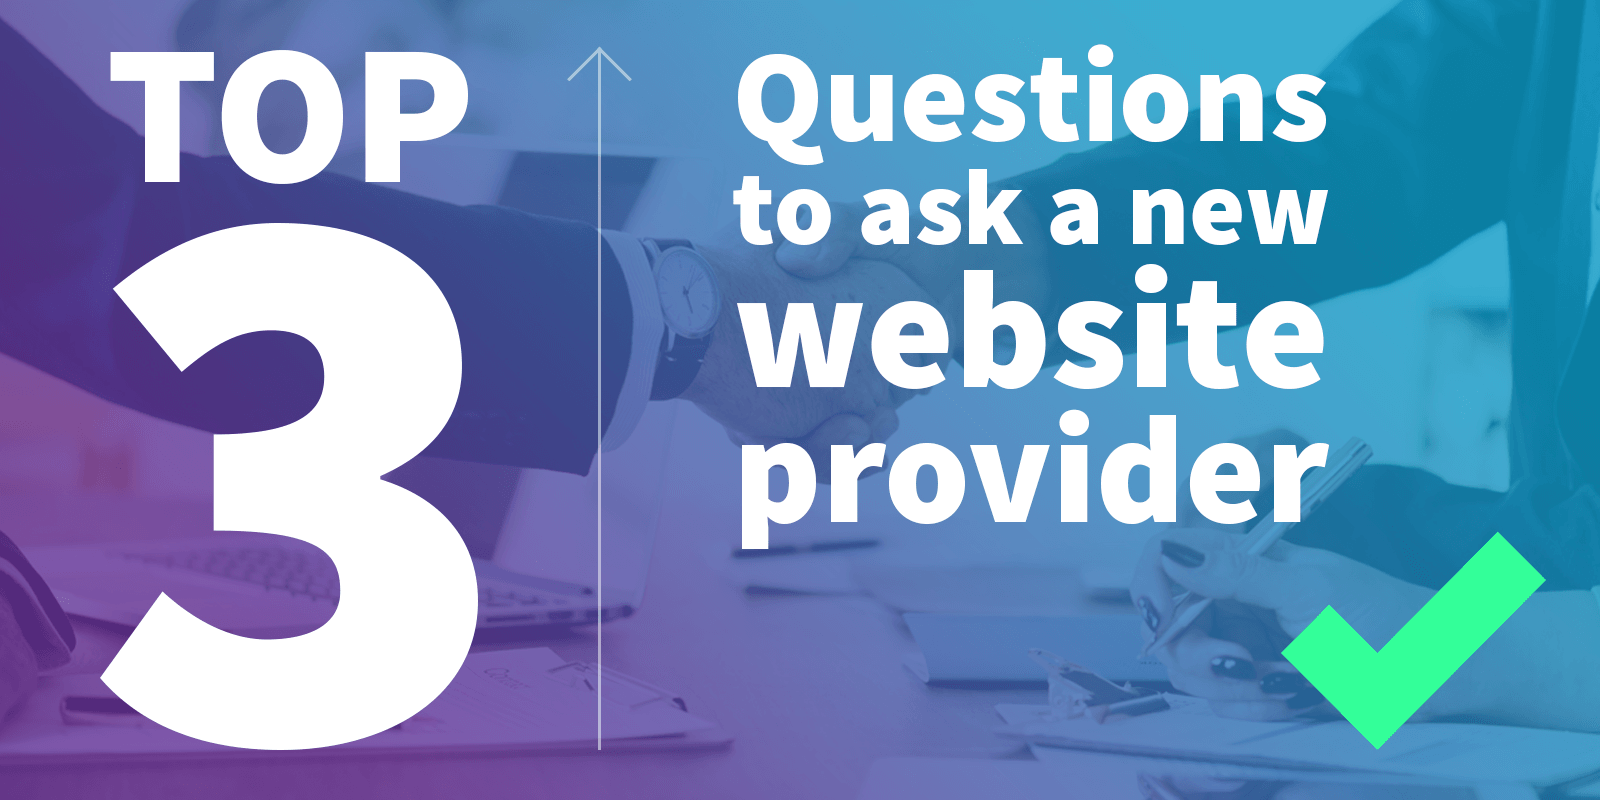 Top 3 questions to ask when choosing a new website provider